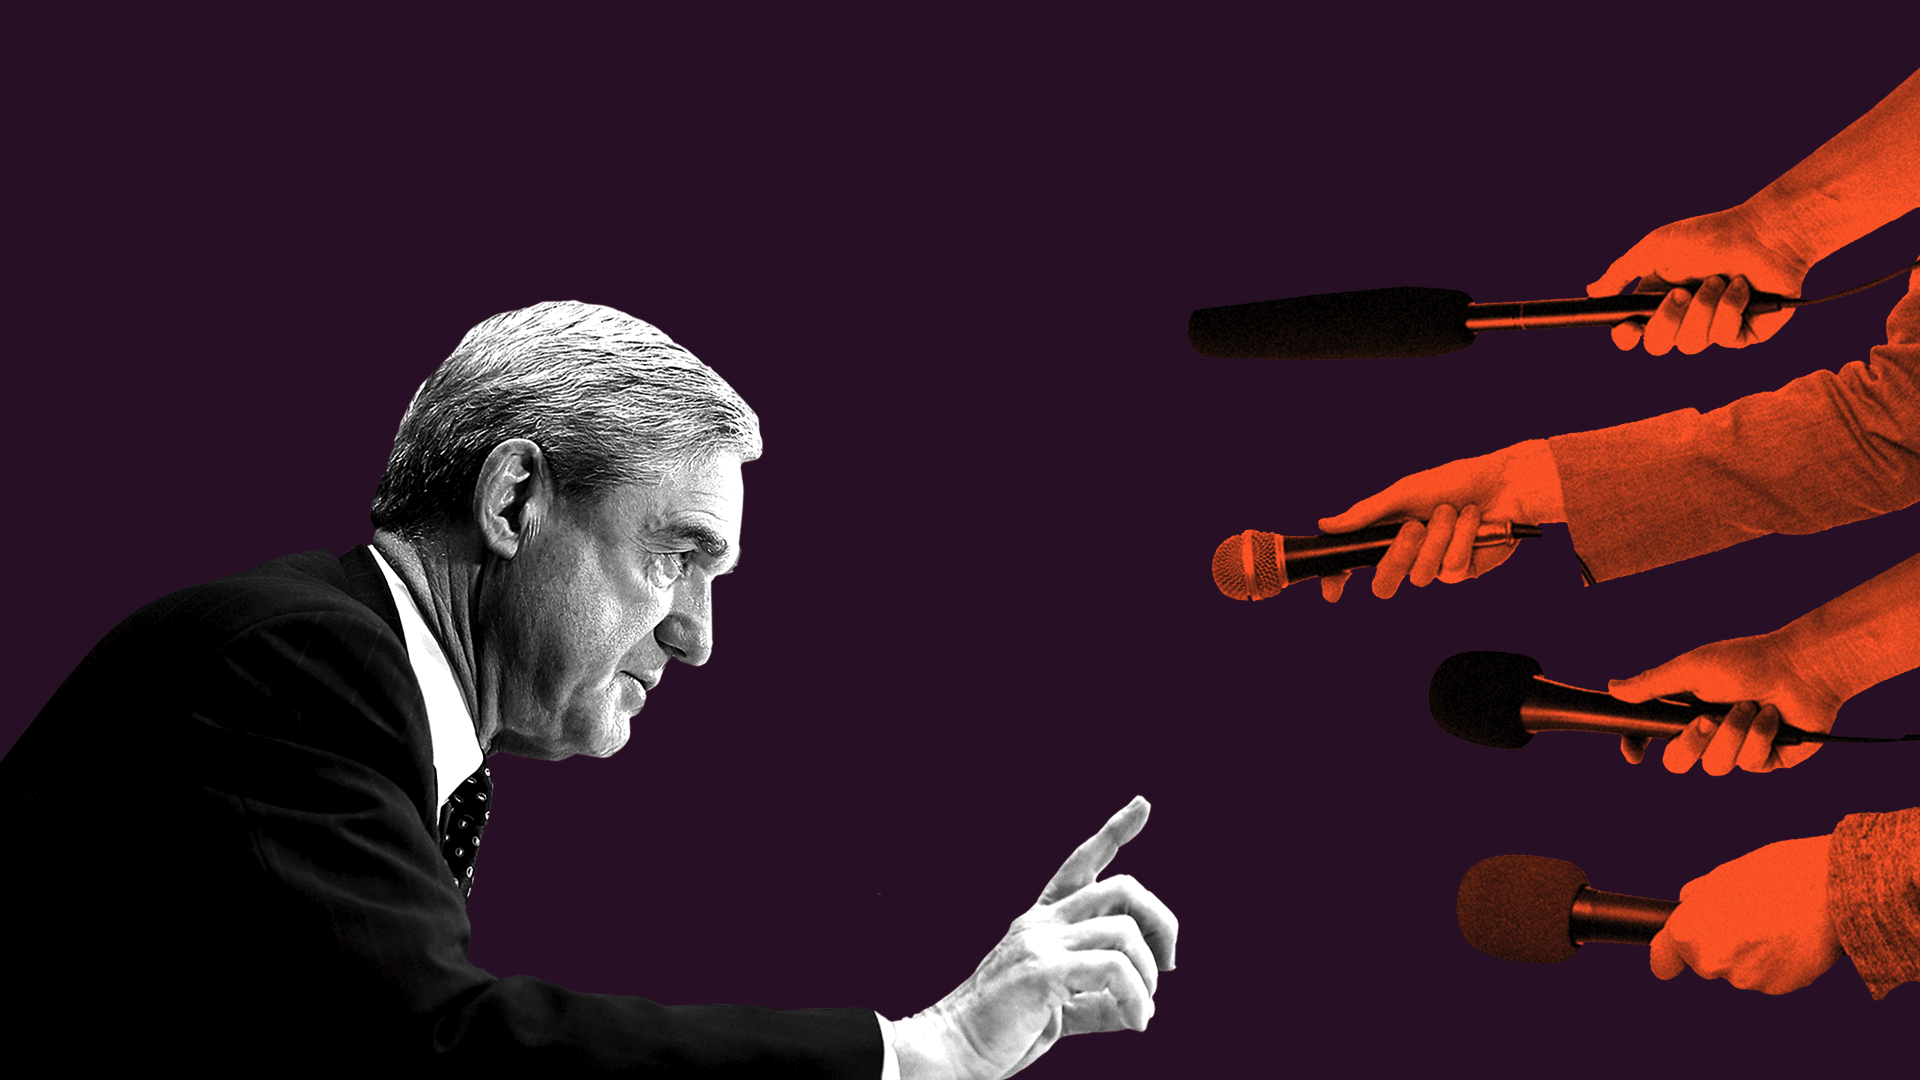 Robert Mueller facing microphones